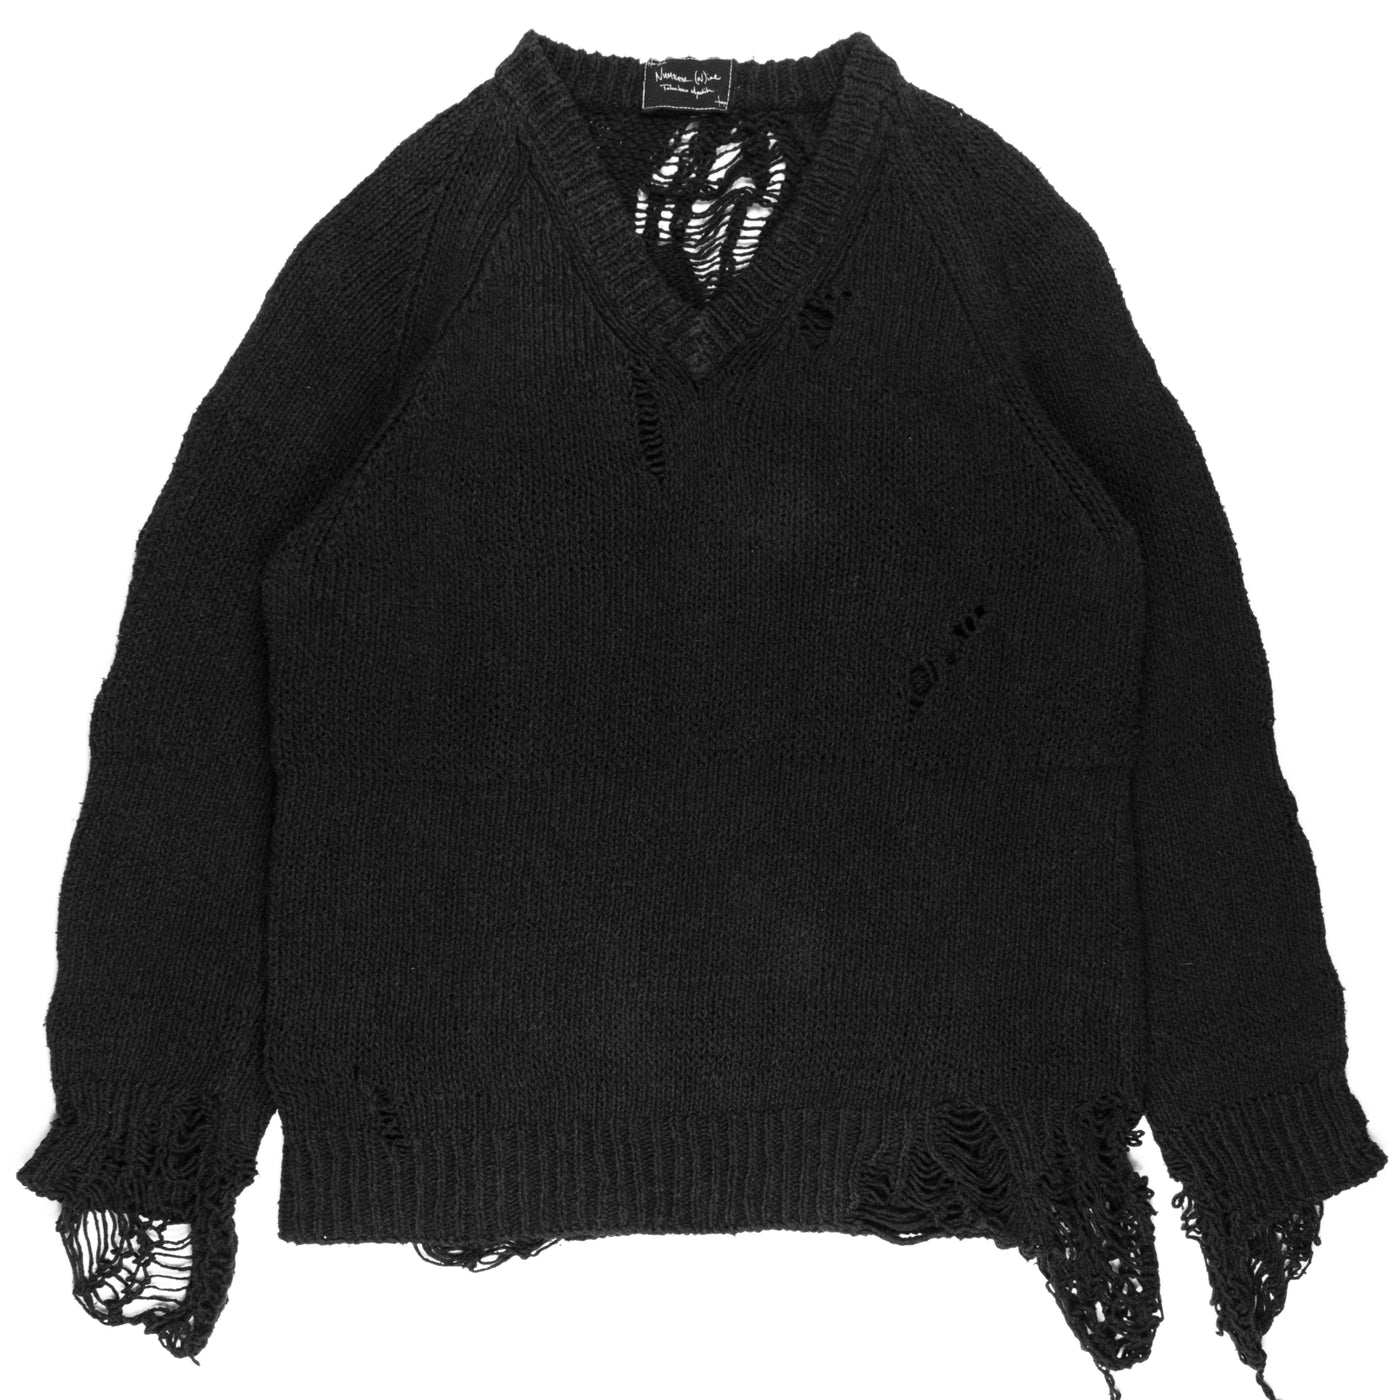 Number (N)ine Destroyed Sweater - SS/AW03